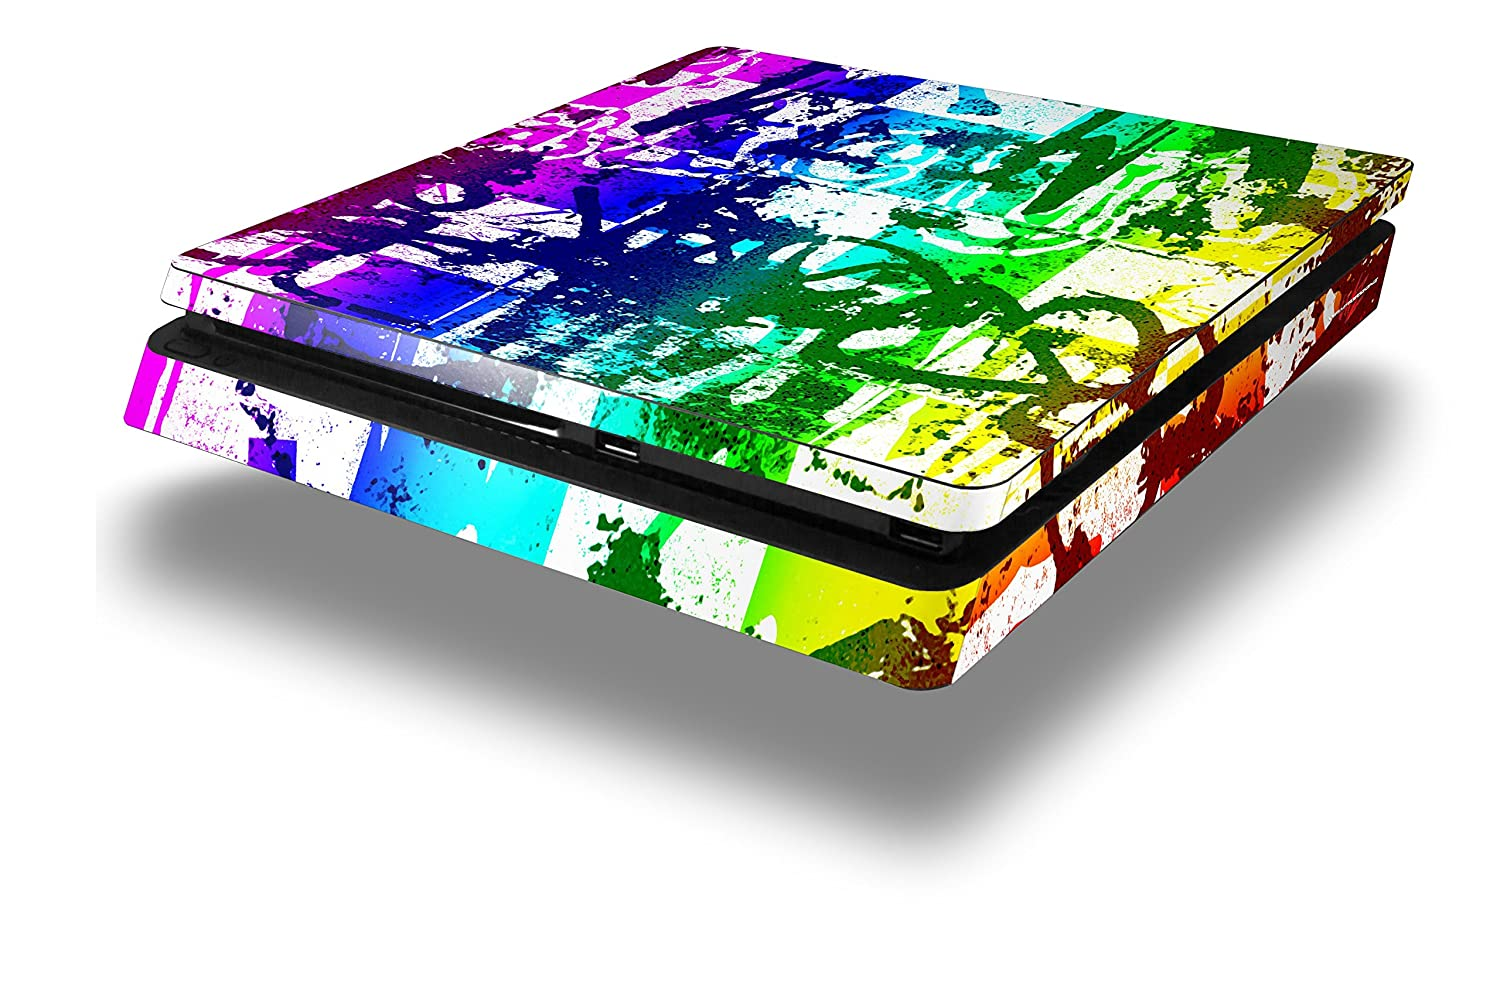 Rainbow Graffiti - Decal Style Skin fits Sony PlayStation 4 Slim Gaming Console